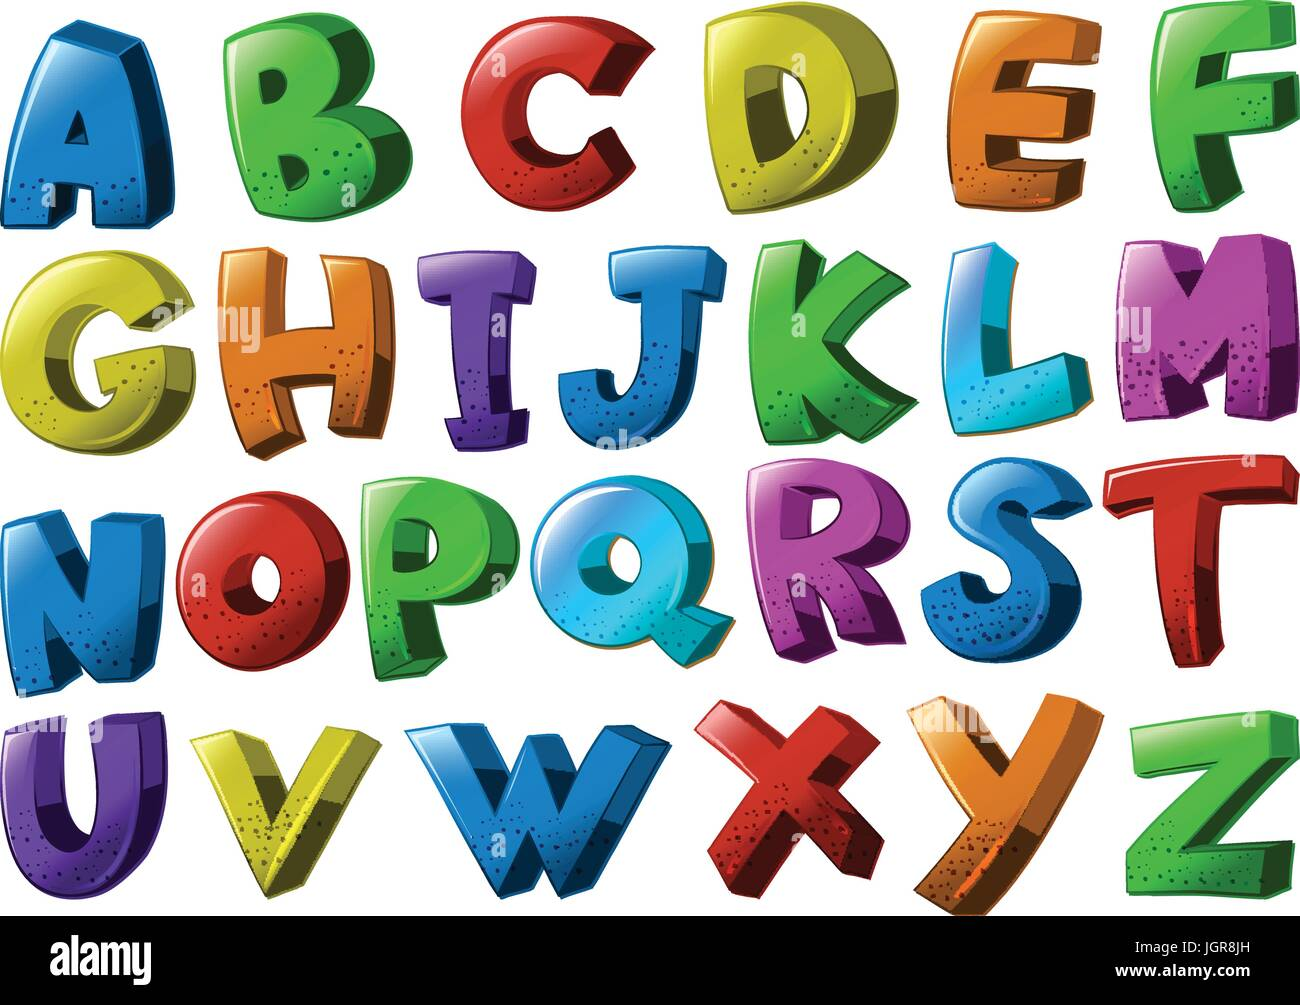 English alphabet fonts in different colors illustration - Stock Vector